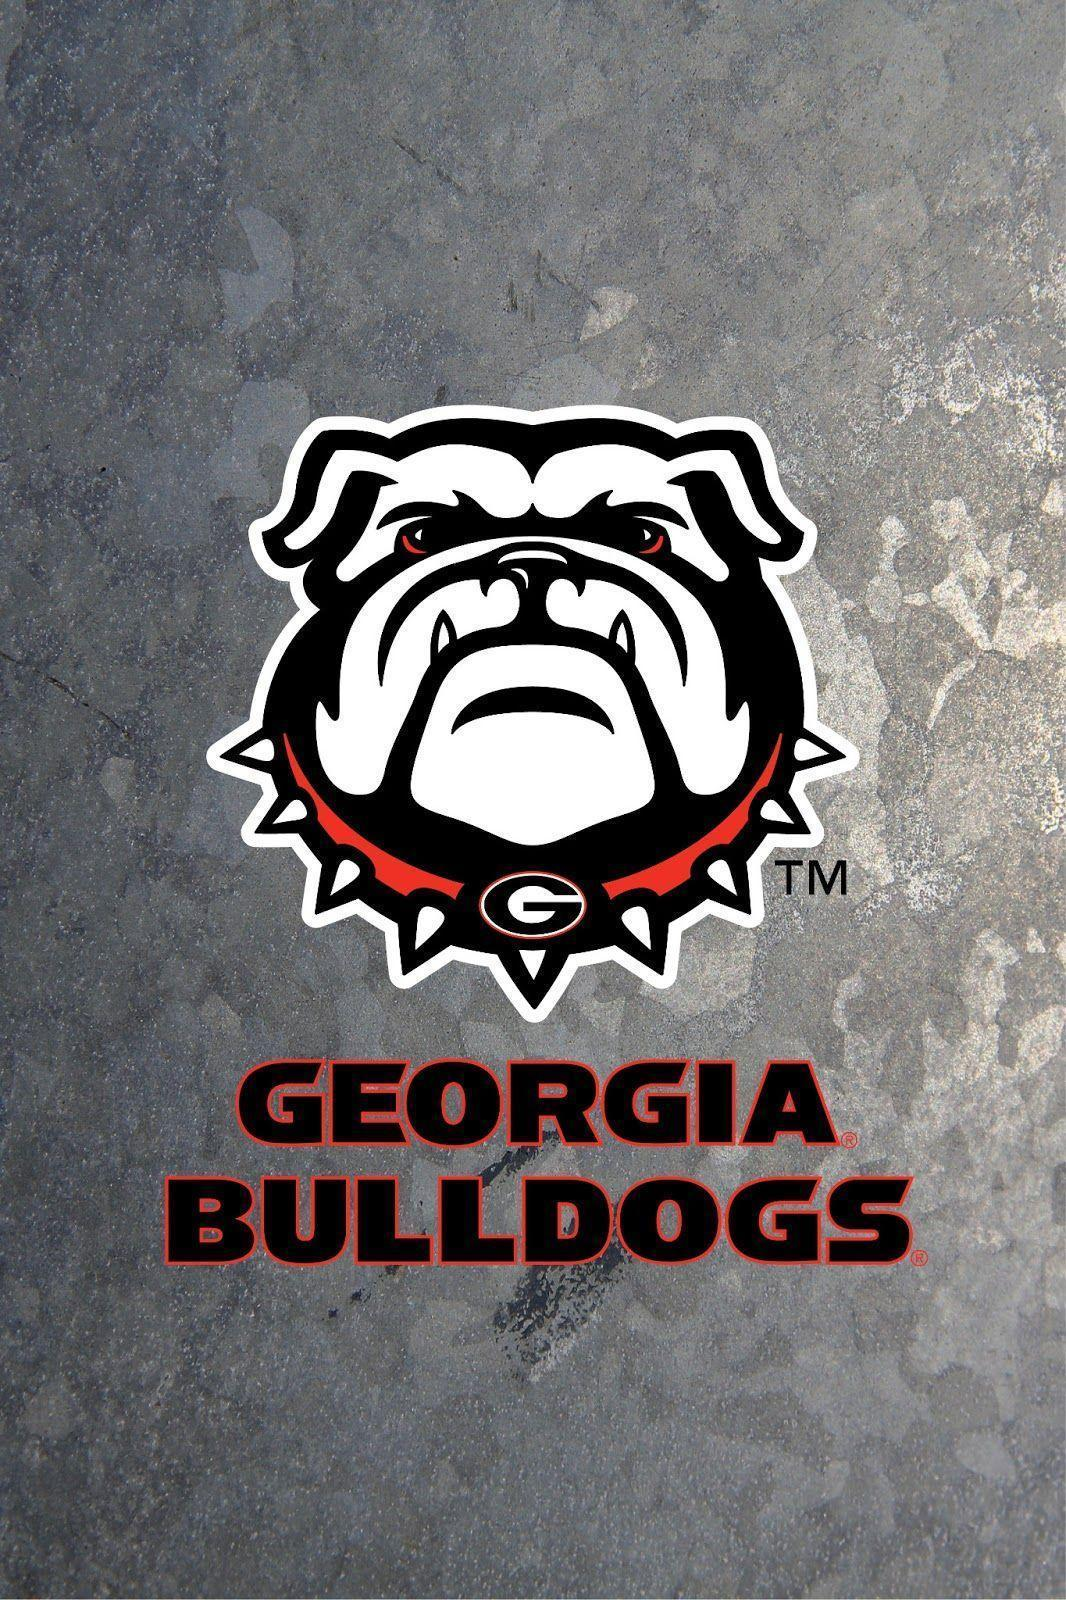 georgia bulldogs wallpaper